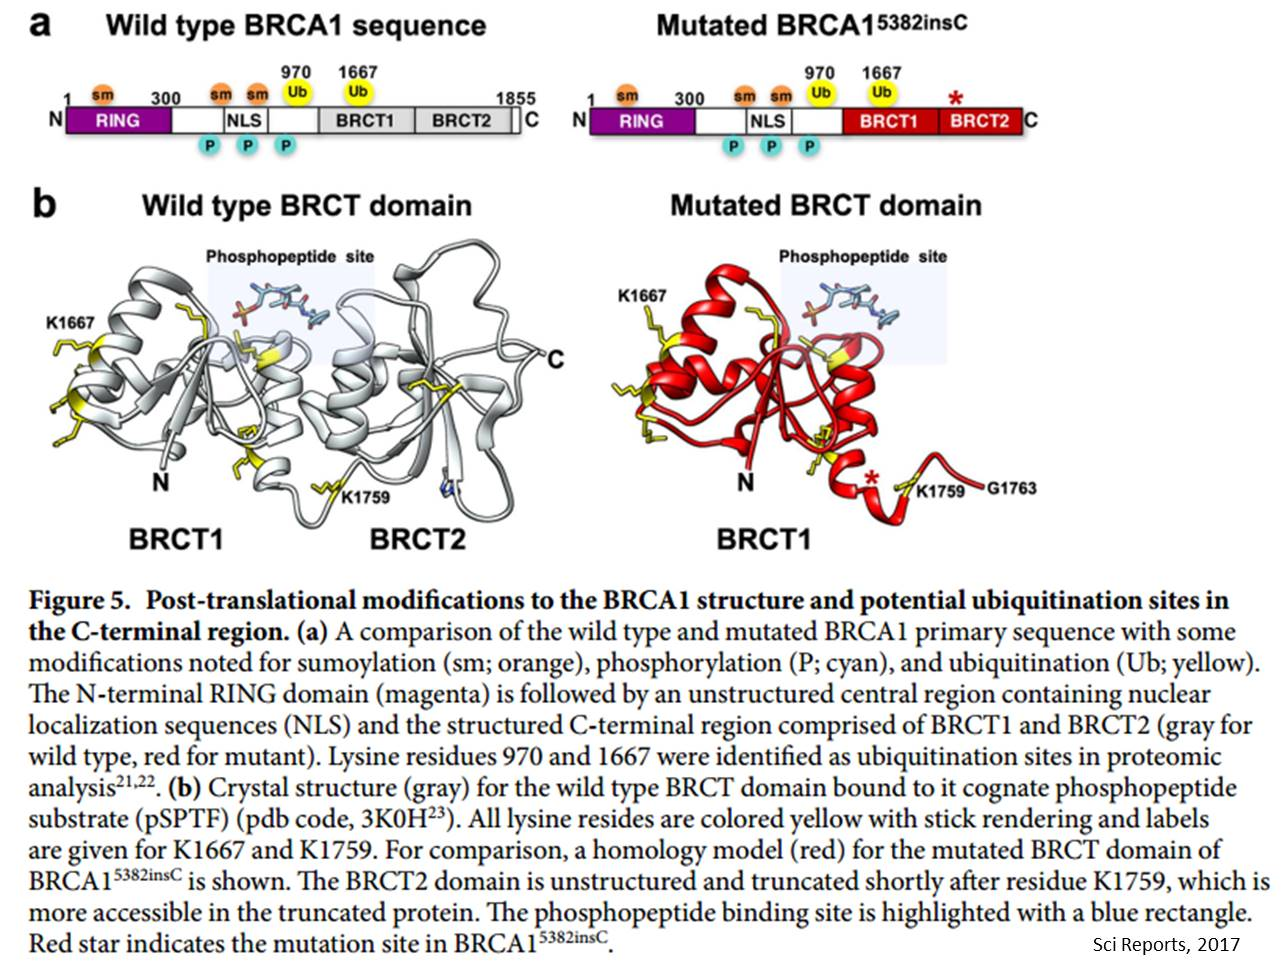 Breast cancer mutation in BRCA1 causes protein to self-destruct